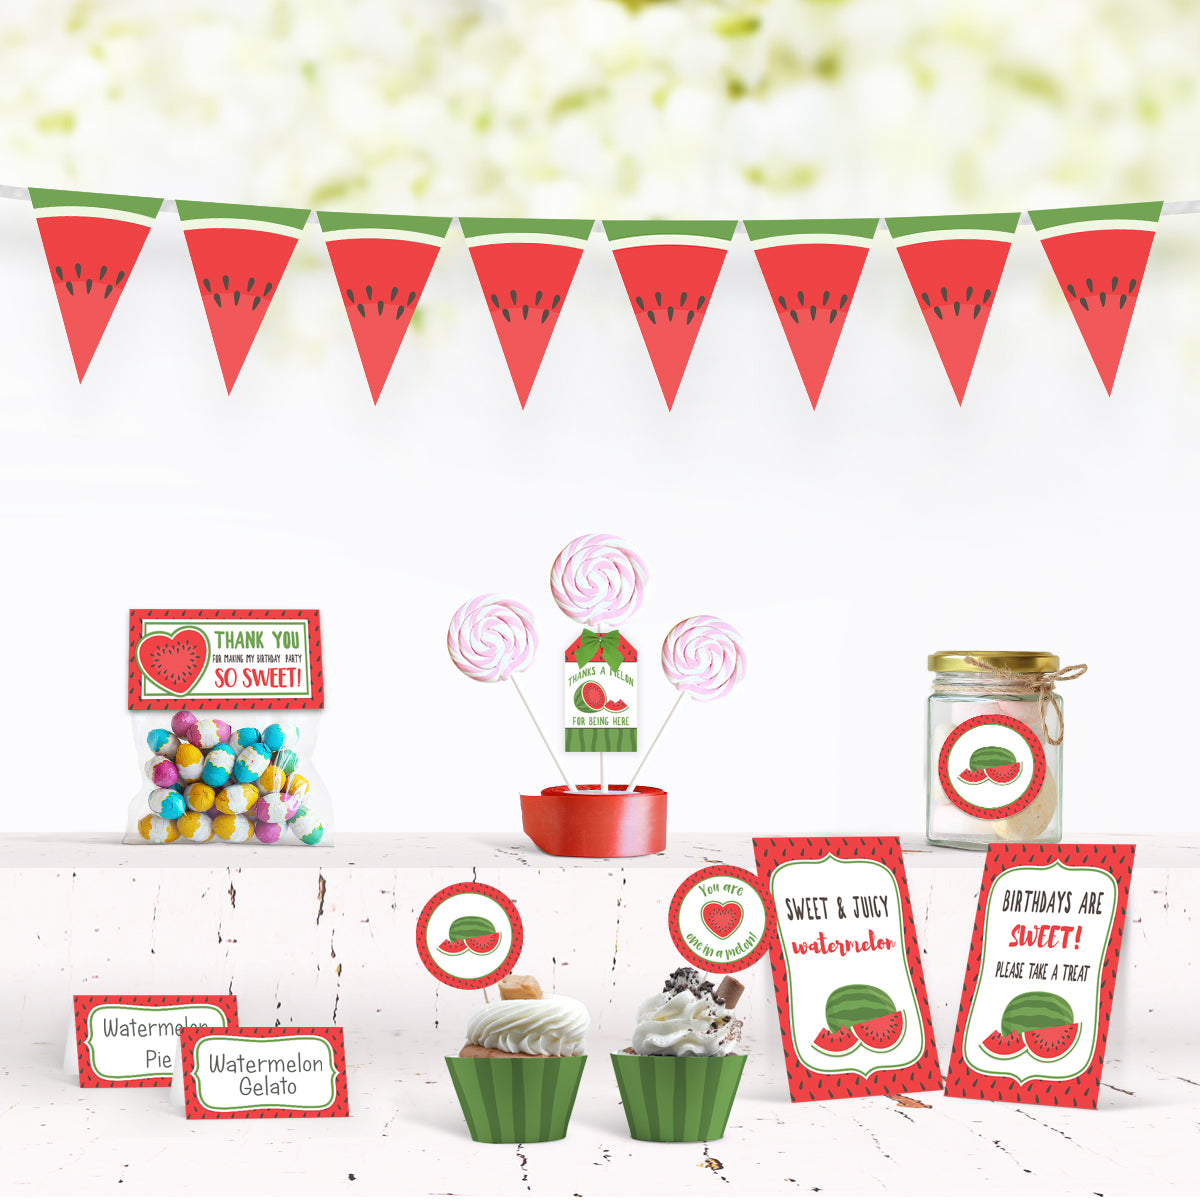 printable watermelon summer birthday party decorations banner bunting cupcake wrapper topper treat bag toppers thank you bags gift tags watermelon signs